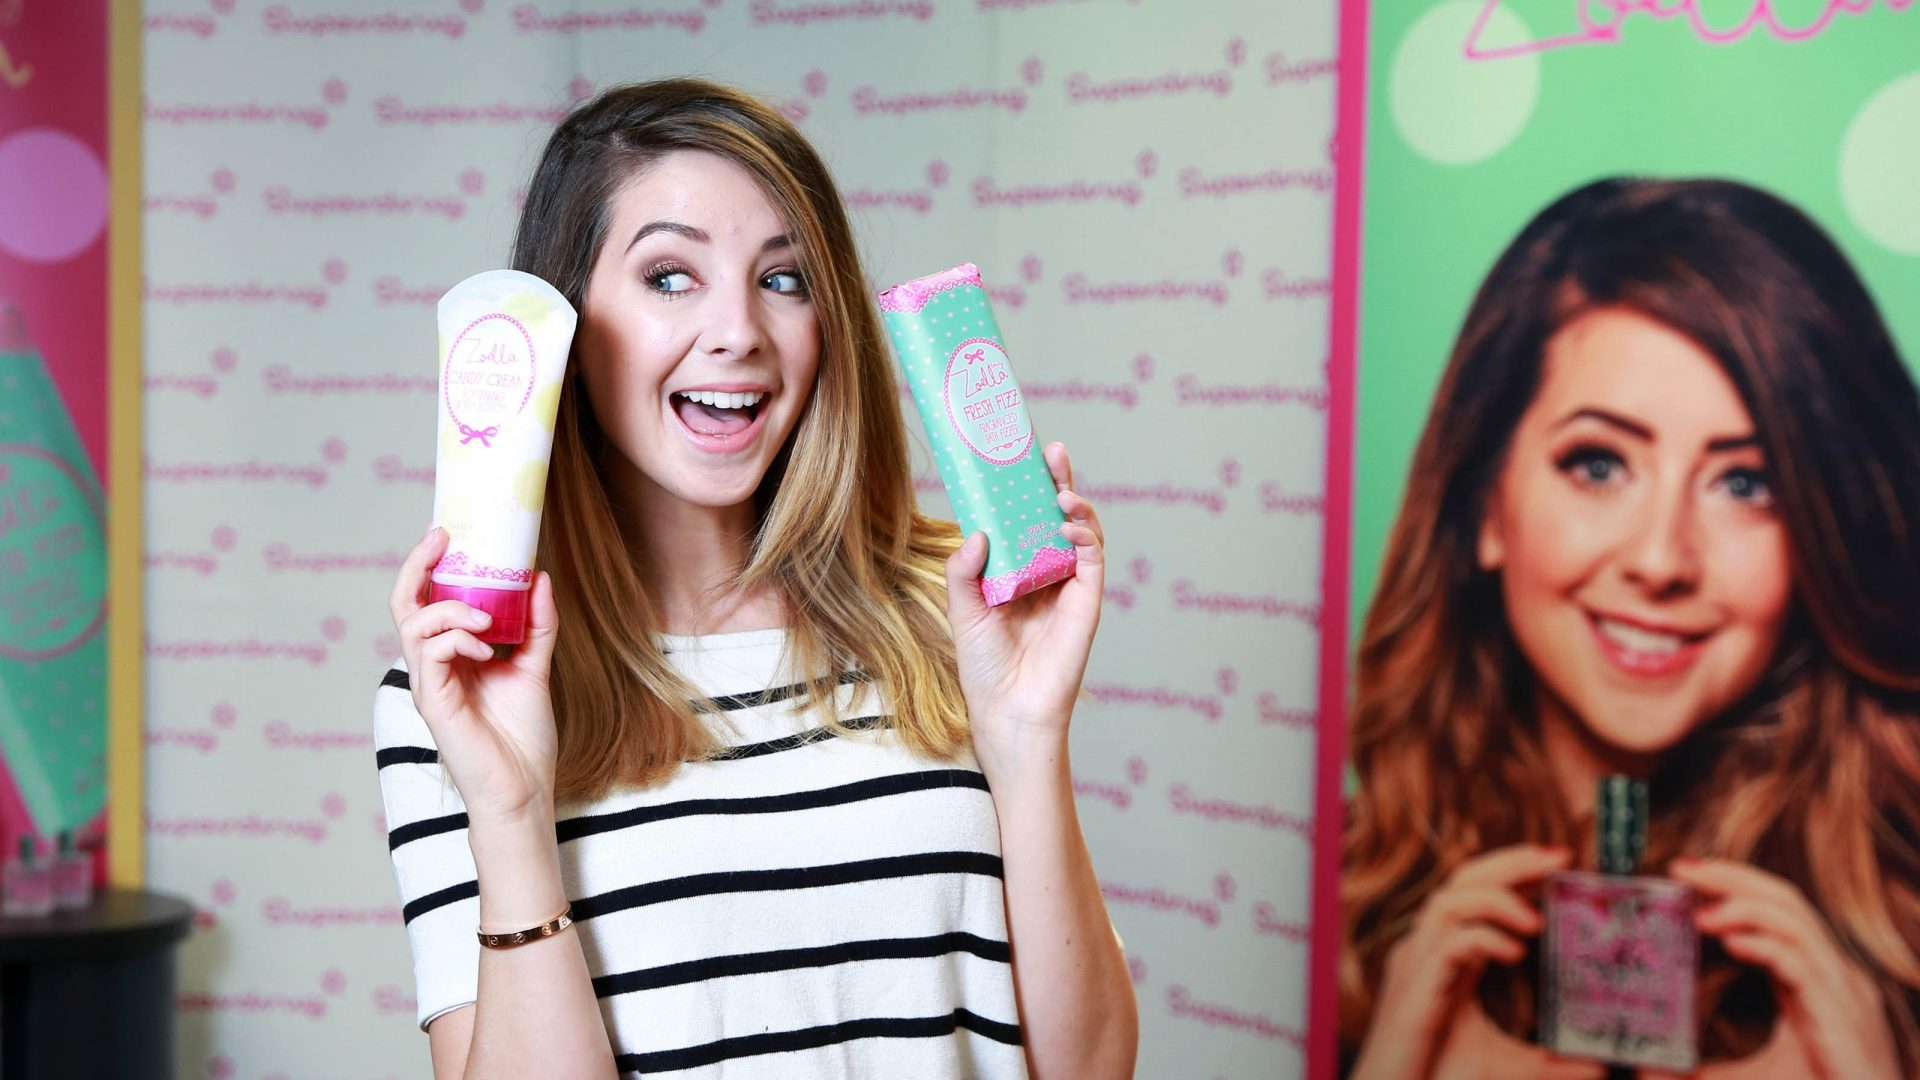 YouTube vlogger Zoella's real name is Zoe Sugg (PA)